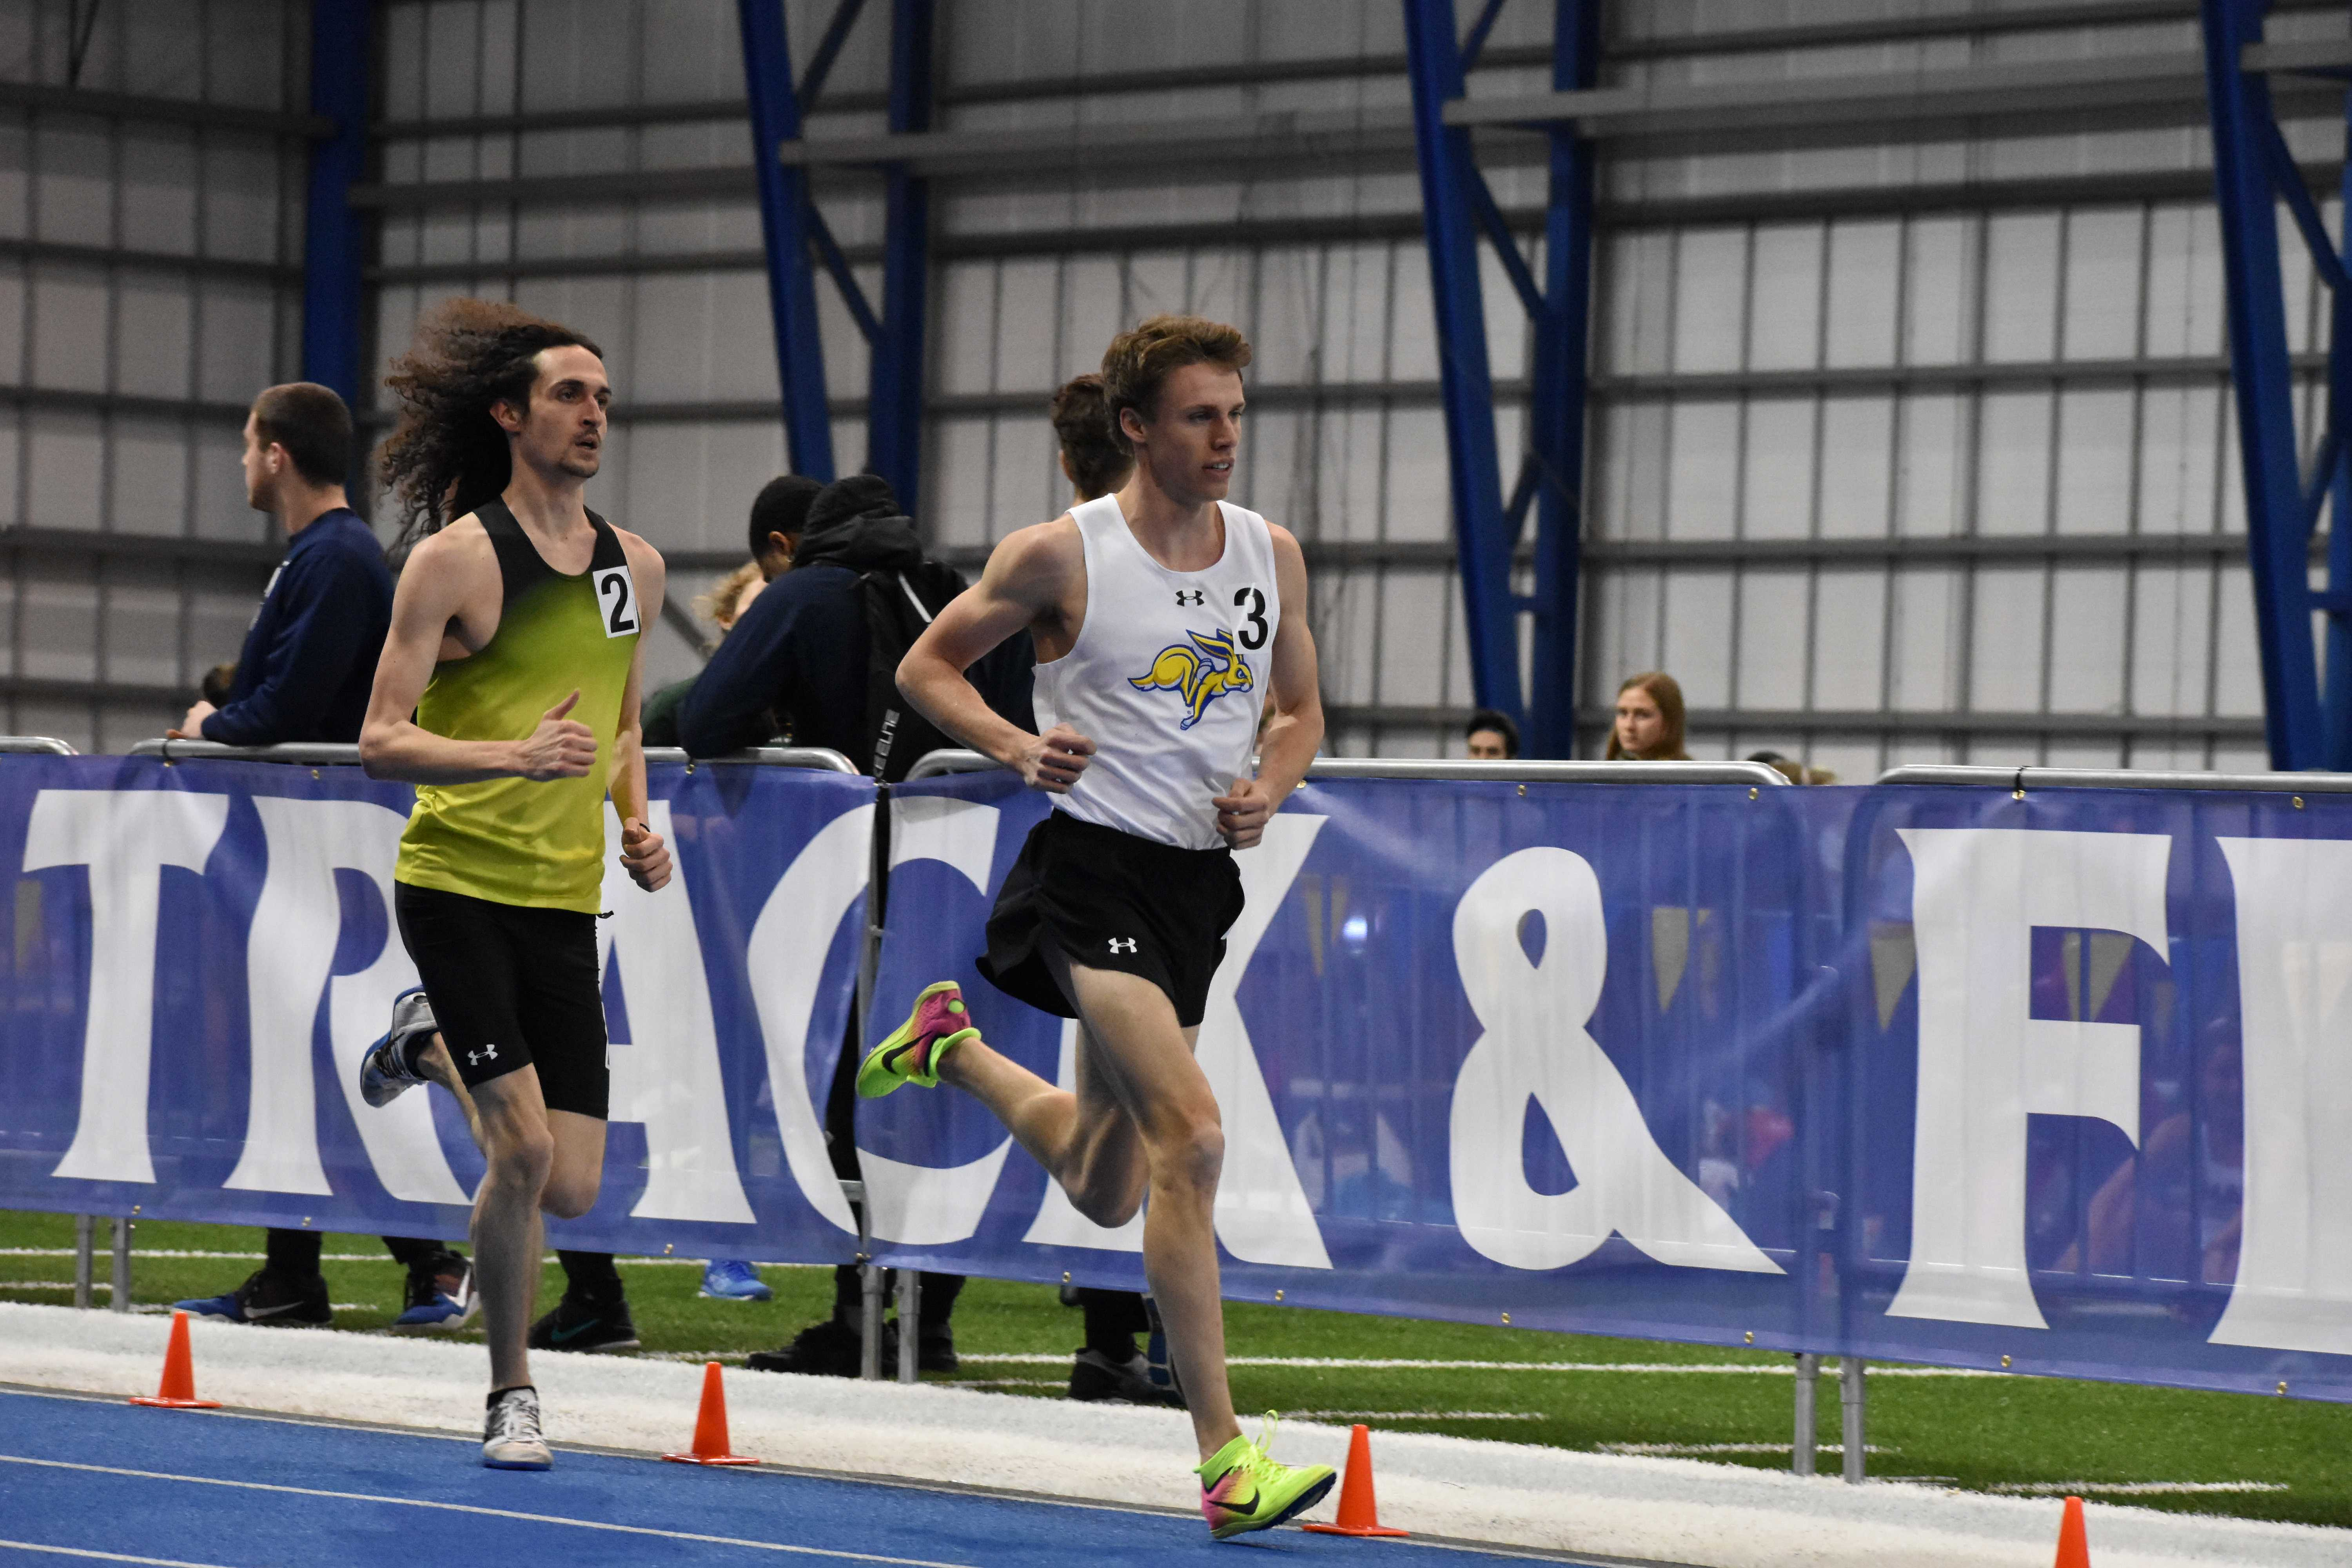 ABBY FULLENKAMP Junior Kyle Burdick runs in the men's 3,000 meter run during the SDSU Indoor Classic meet Feb. 9. Burdick made a new facility record for the men's 3,000 meter run with a time of 8:09.92. The Jacks host the SDSU Last Chance meet at 3pm in the SJAC Friday, Feb. 16.